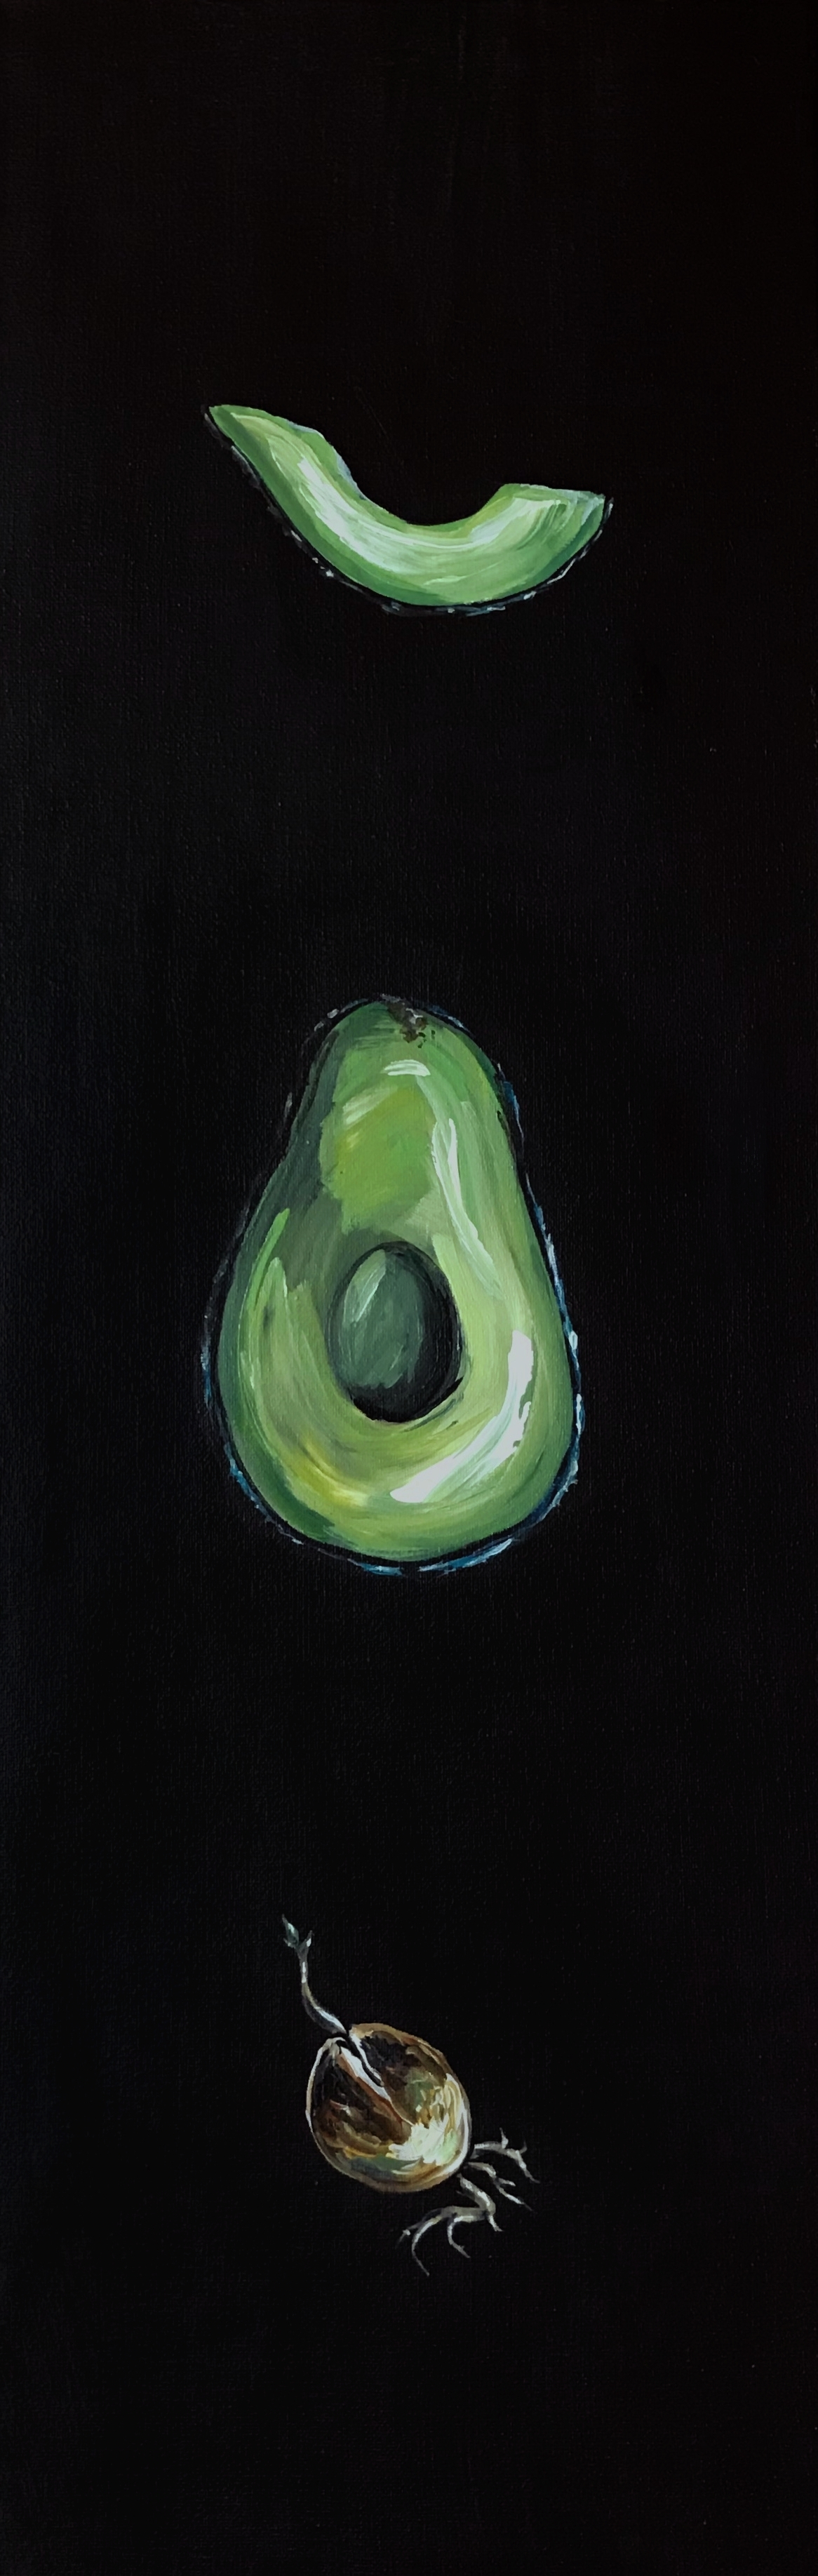 Avocado_Anatomy